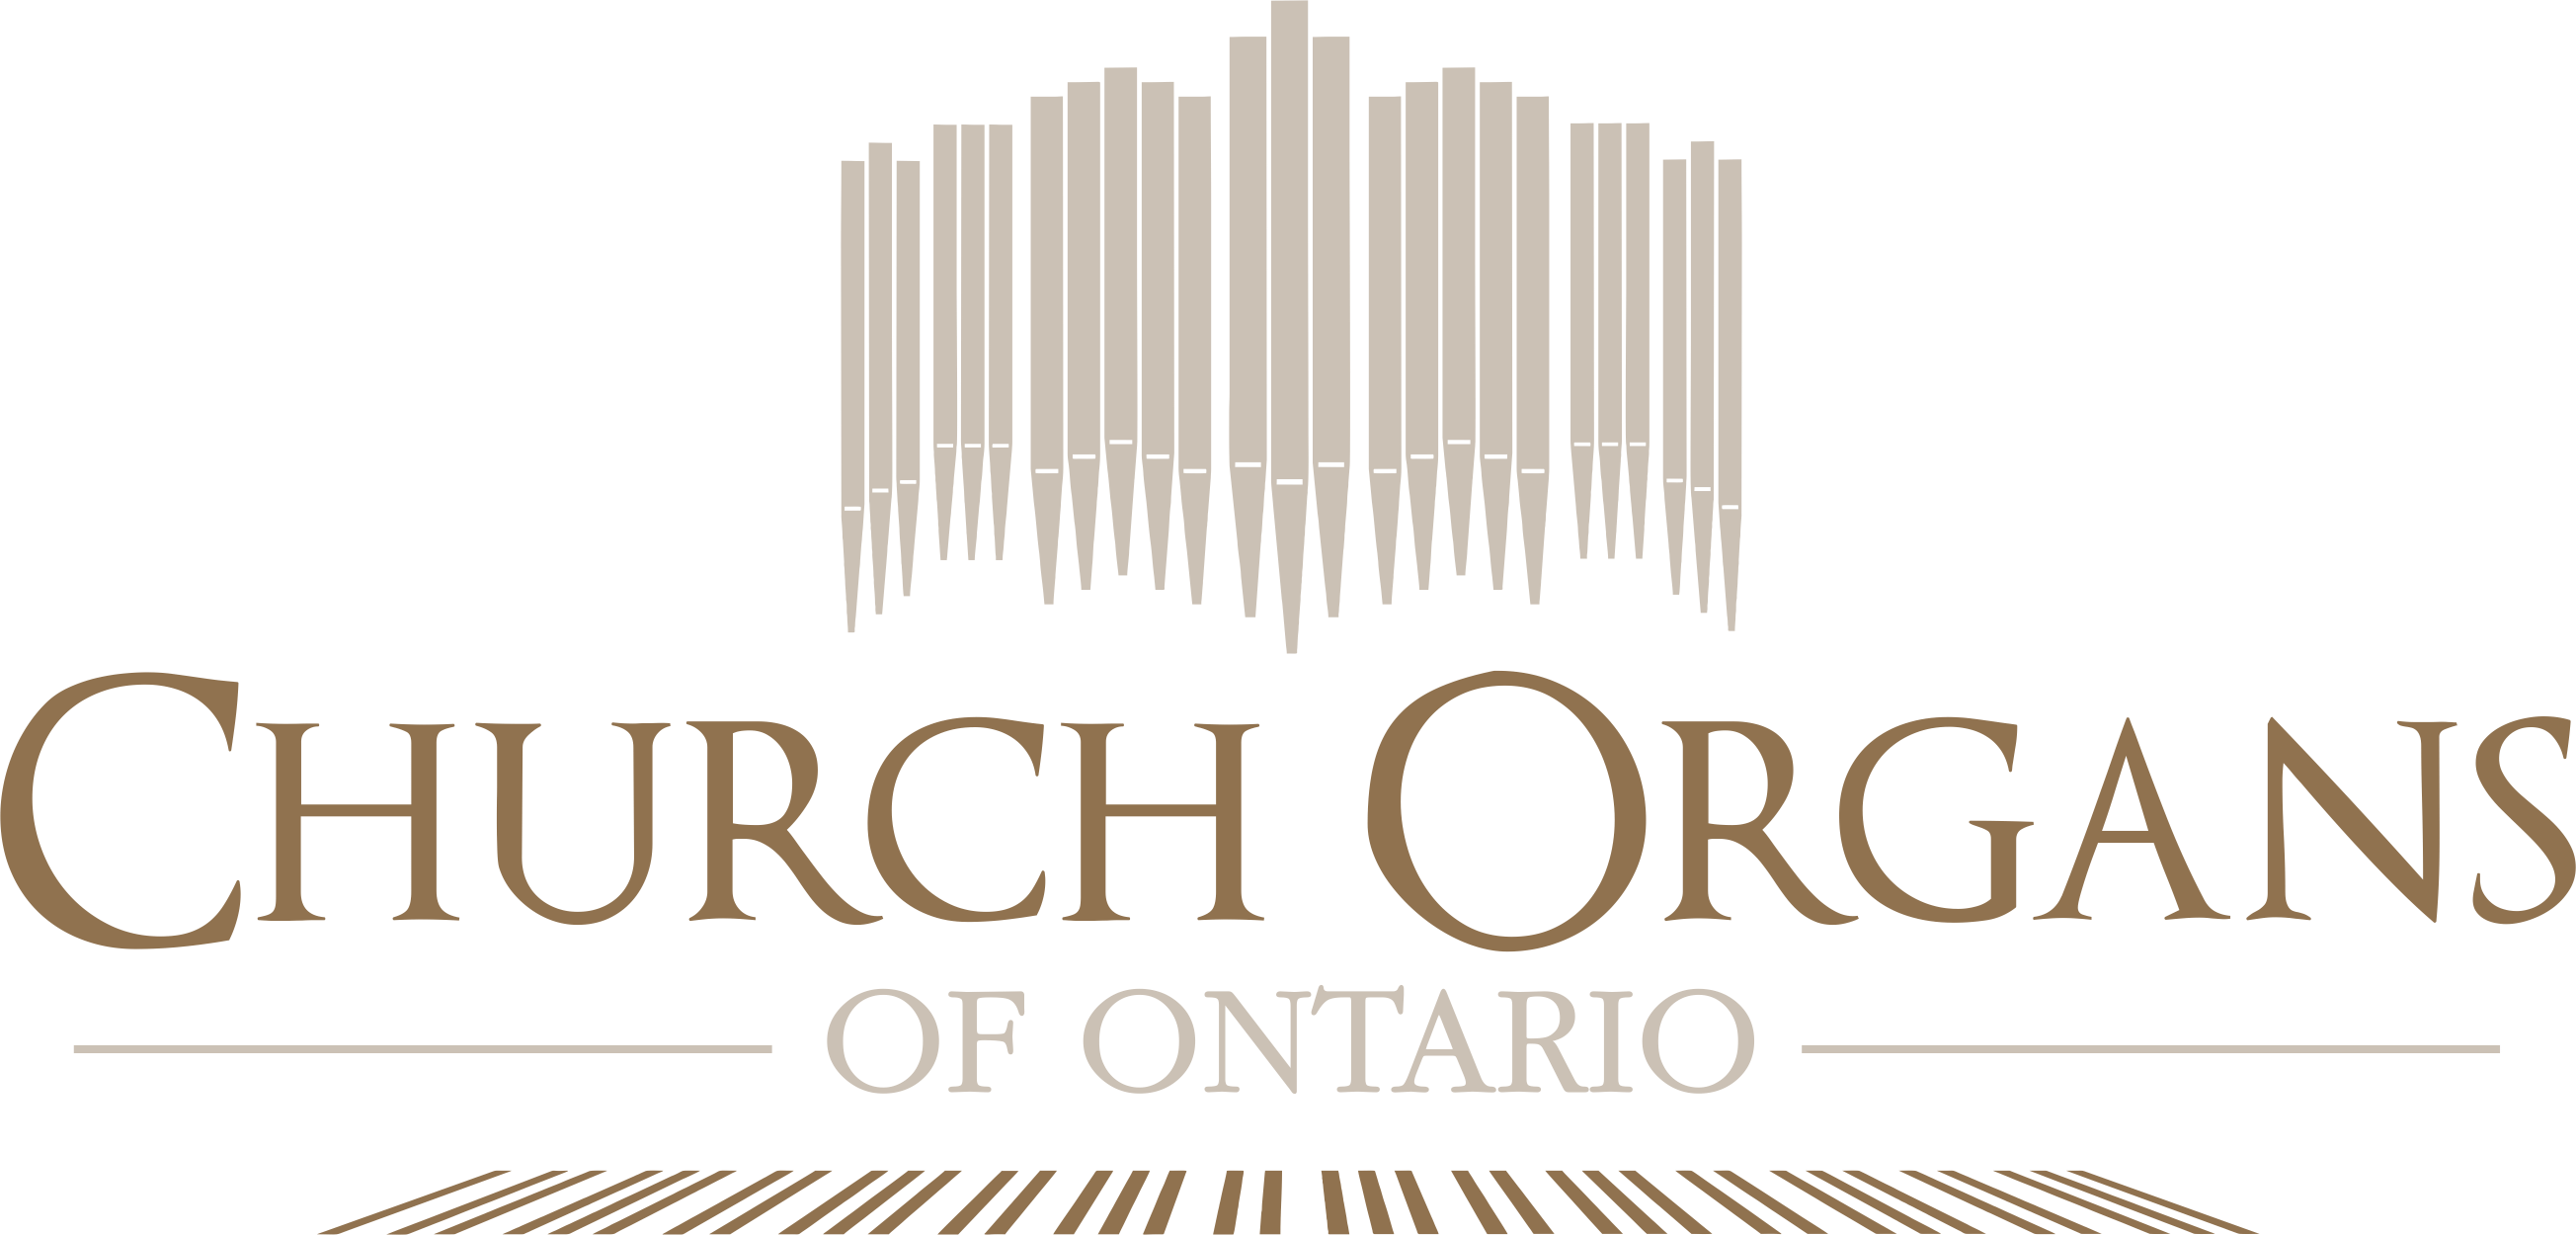 Johannus and Rodgers Church Organs of Ontario